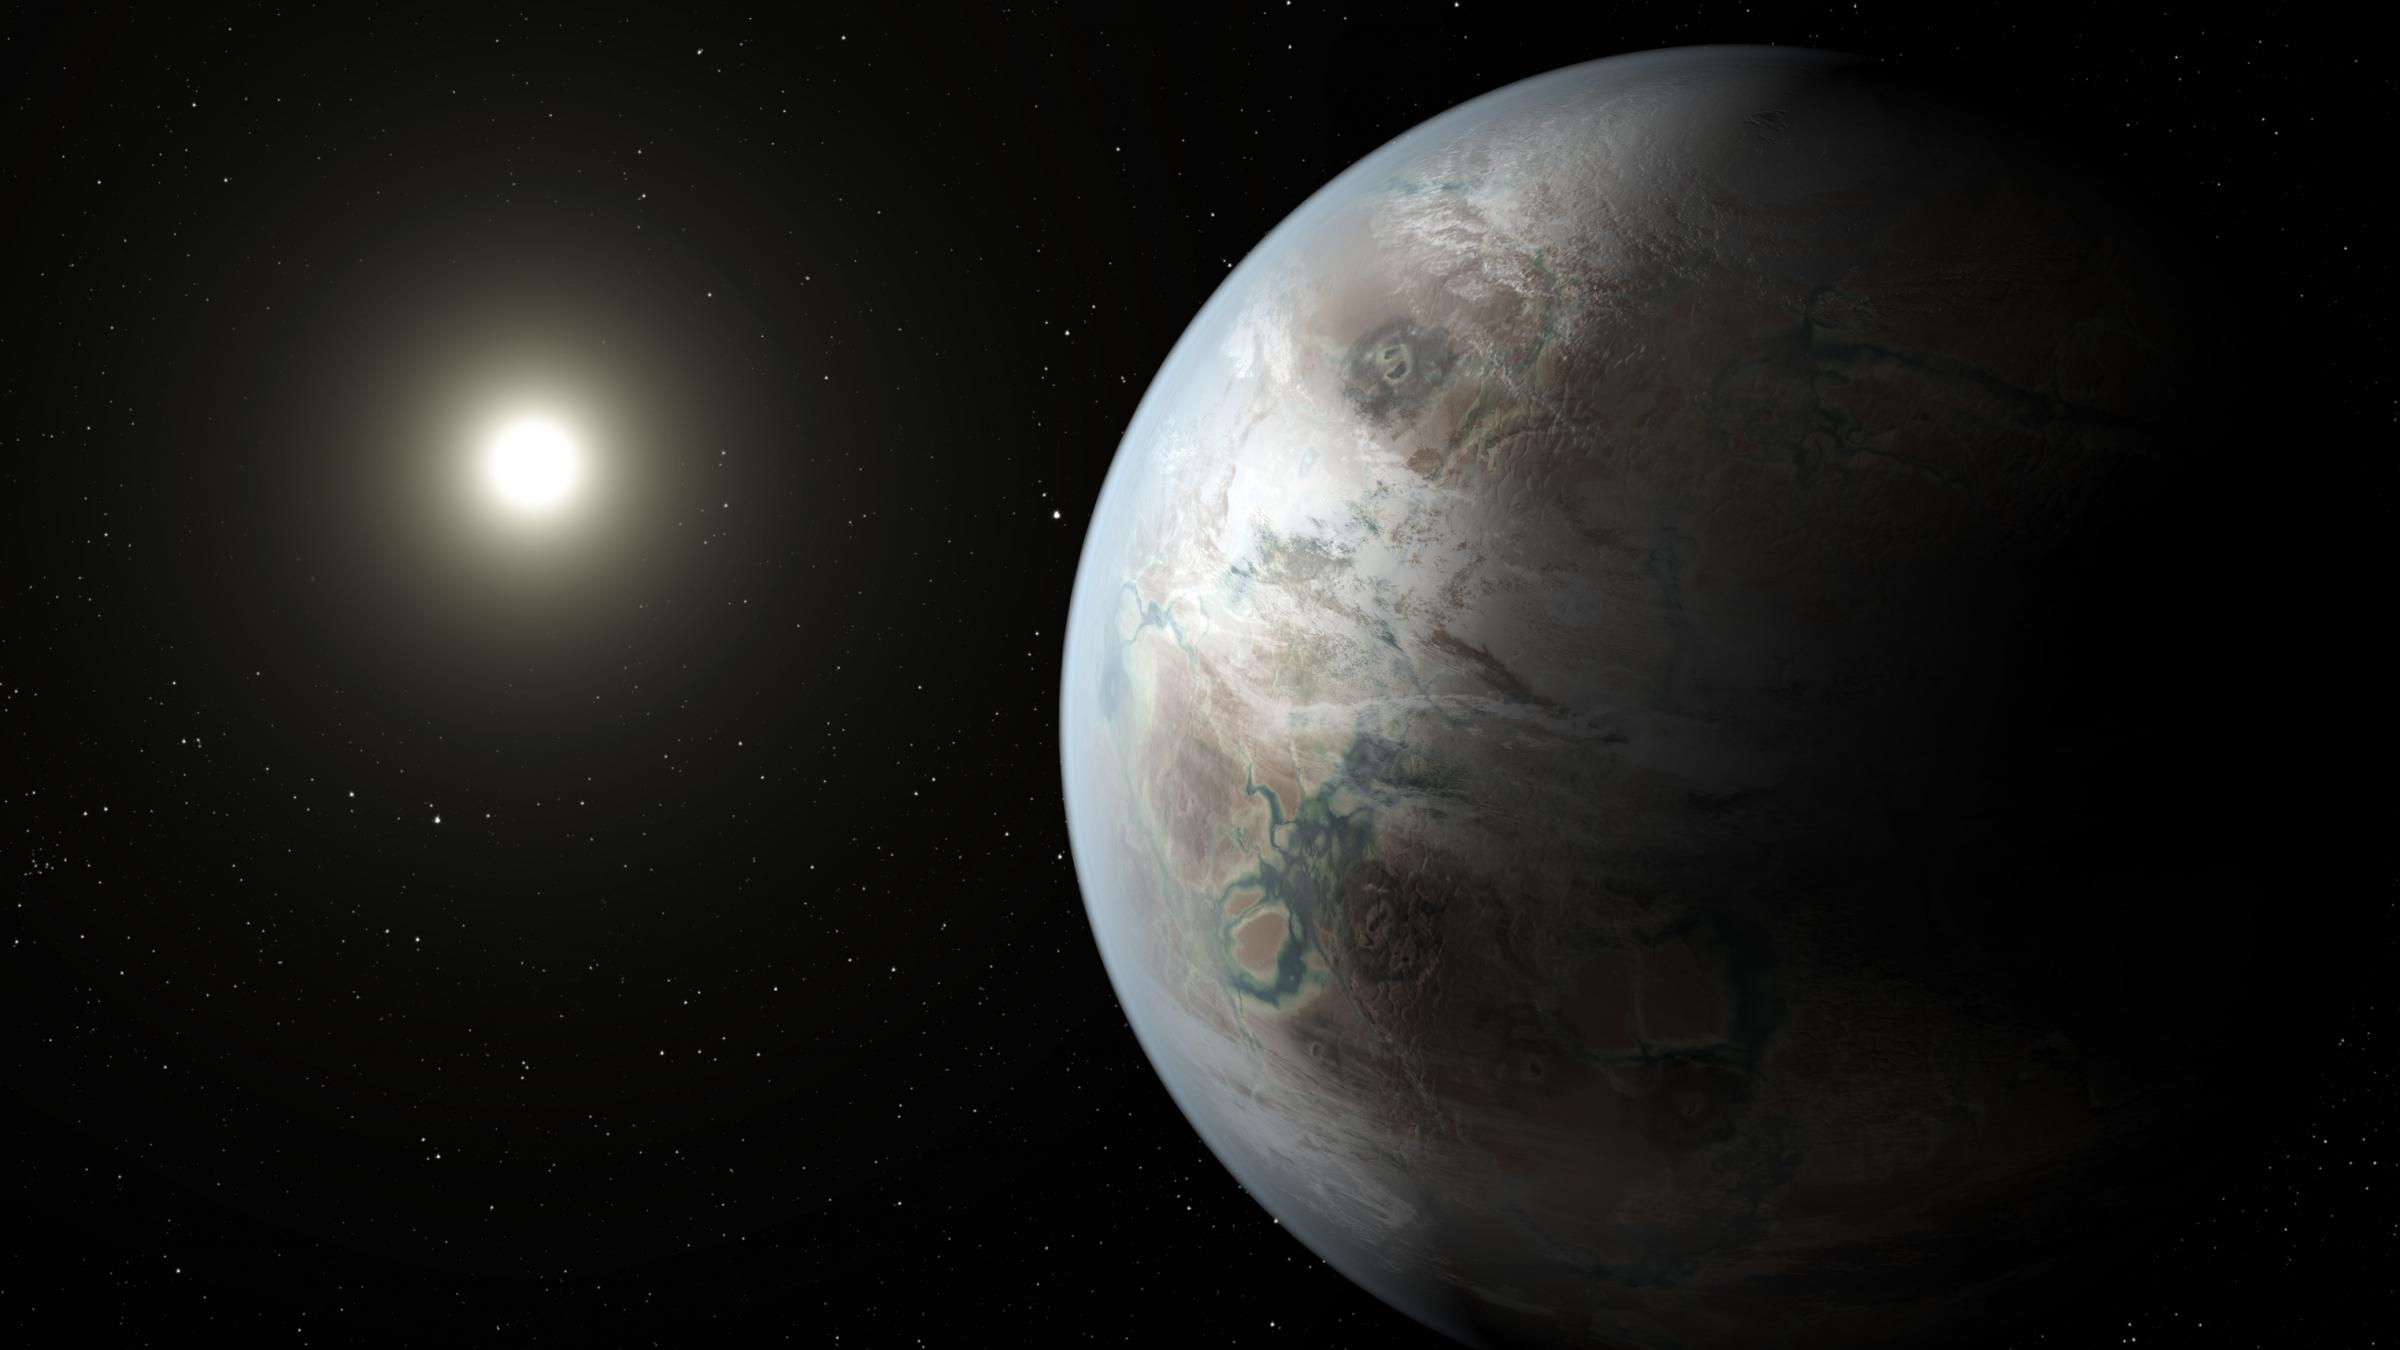 Kepler Finds 219 Exoplanets and 10 out of them could be habitable